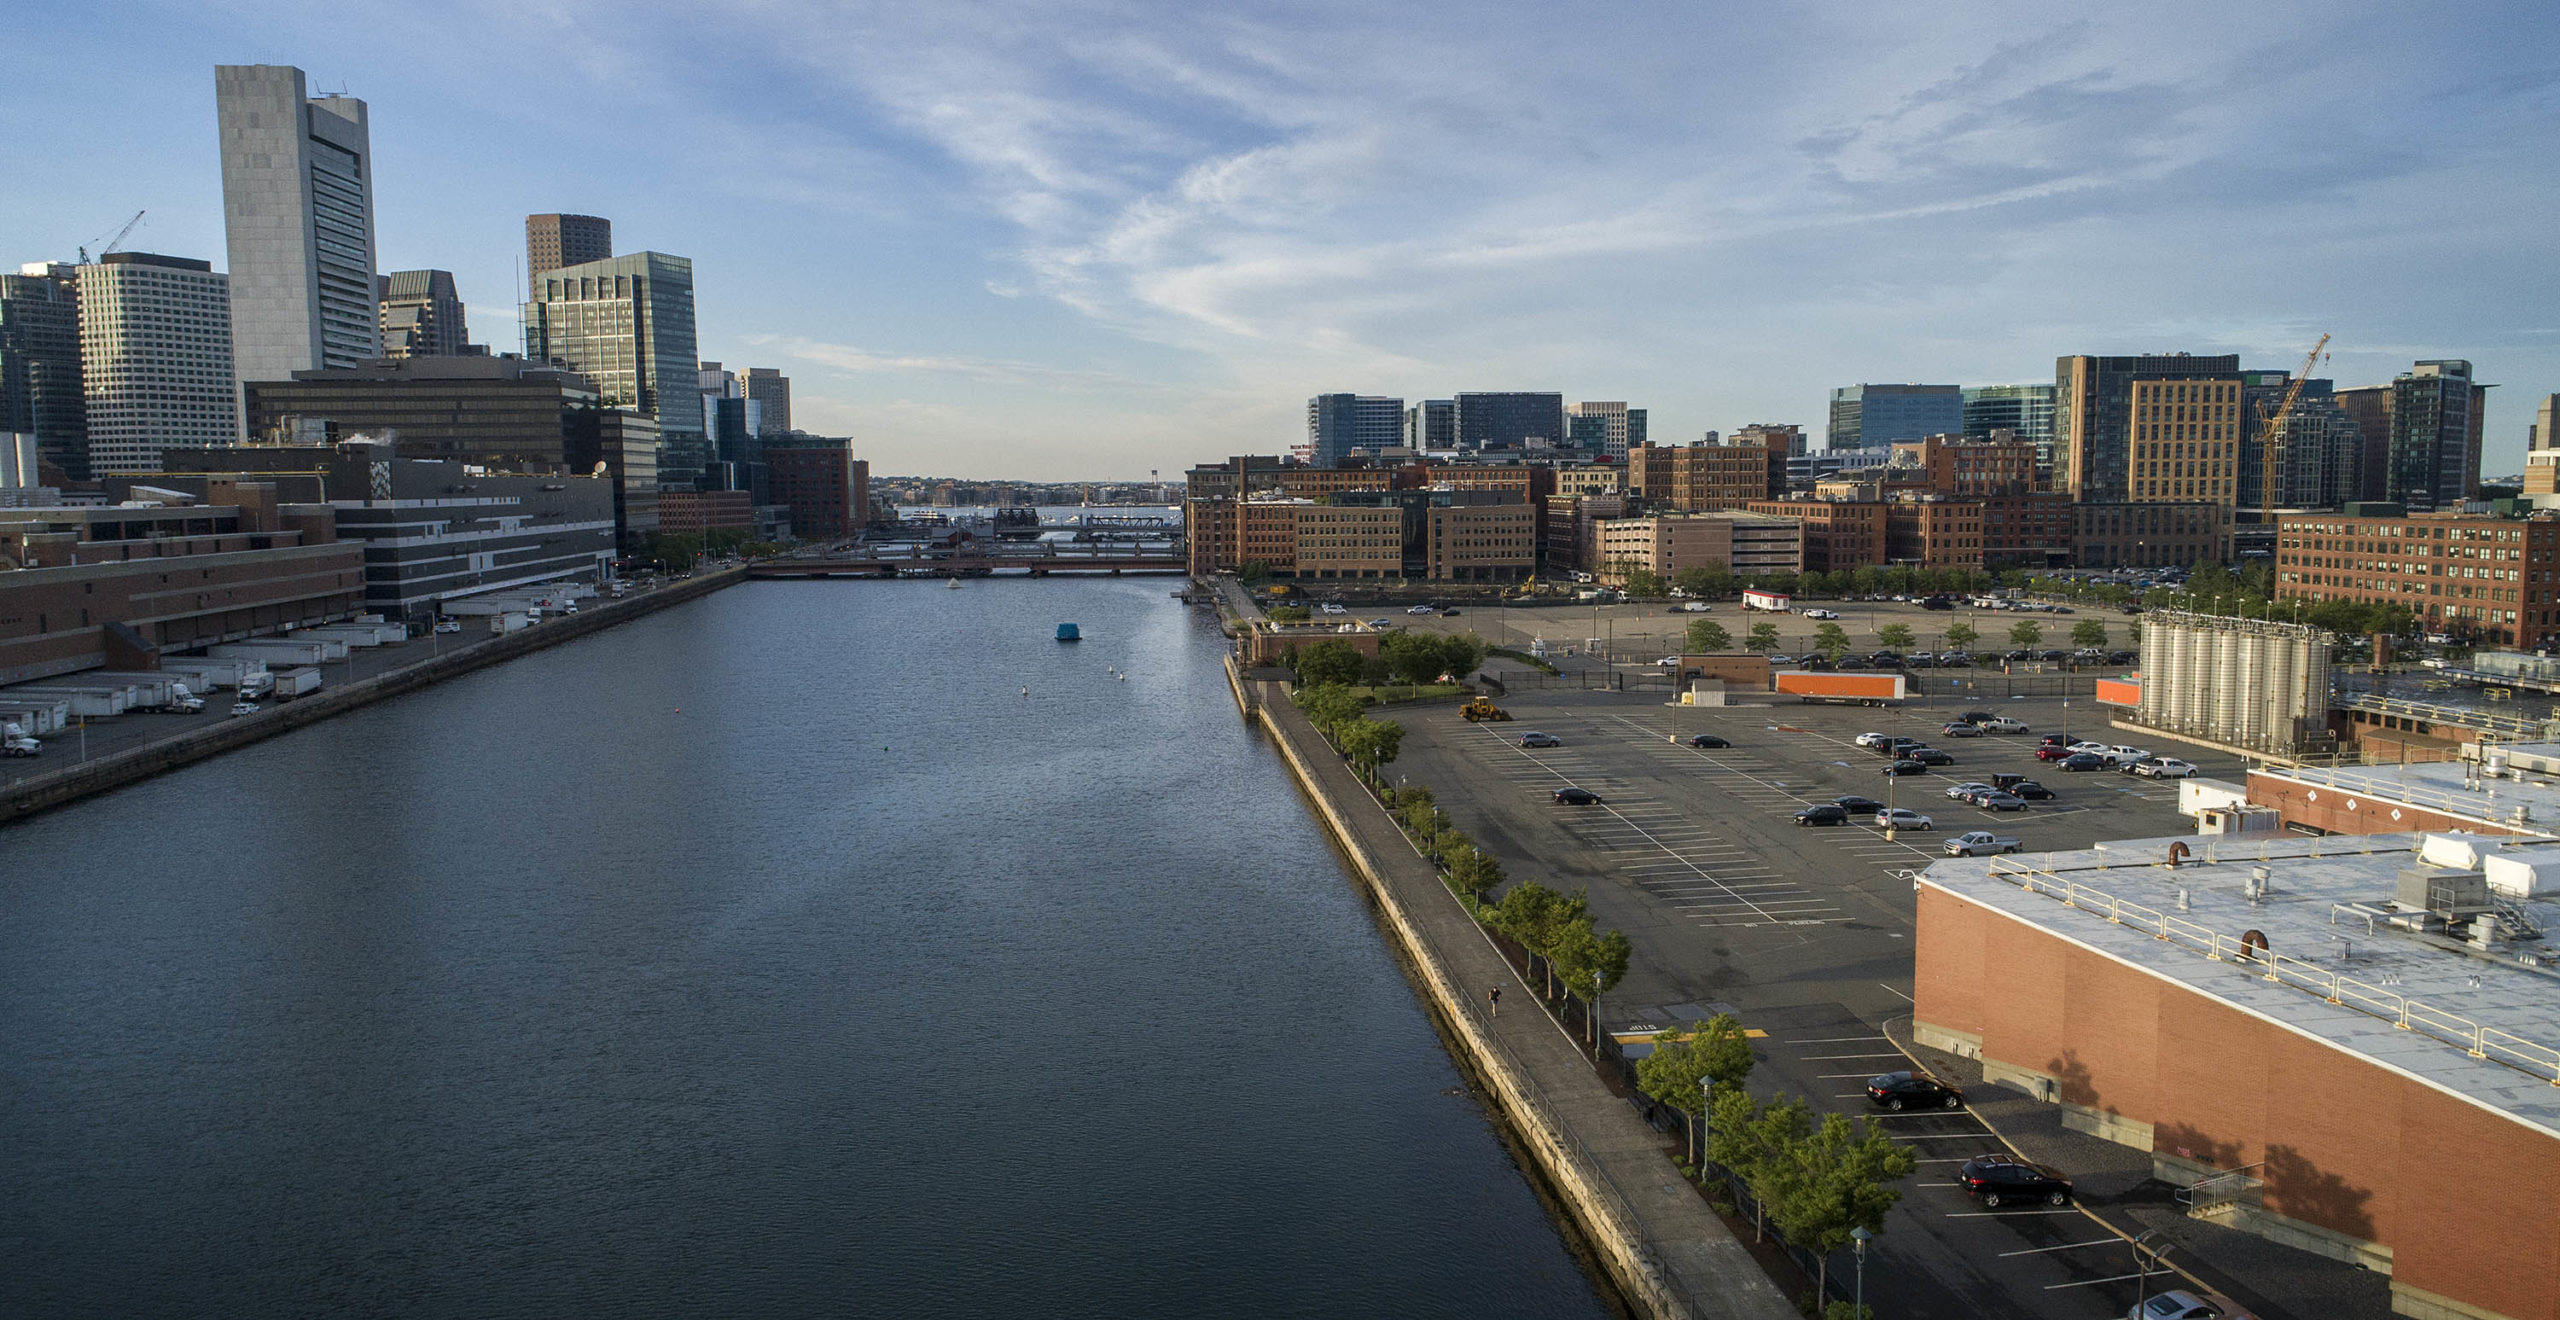 The Harborwalk along the Fort Point Channel from Gillette headquarters looking towards the Seaport. Two projects in the works will raise the Harborwalk to create a berm to hold back high water. (Robin Lubbock/WBUR)